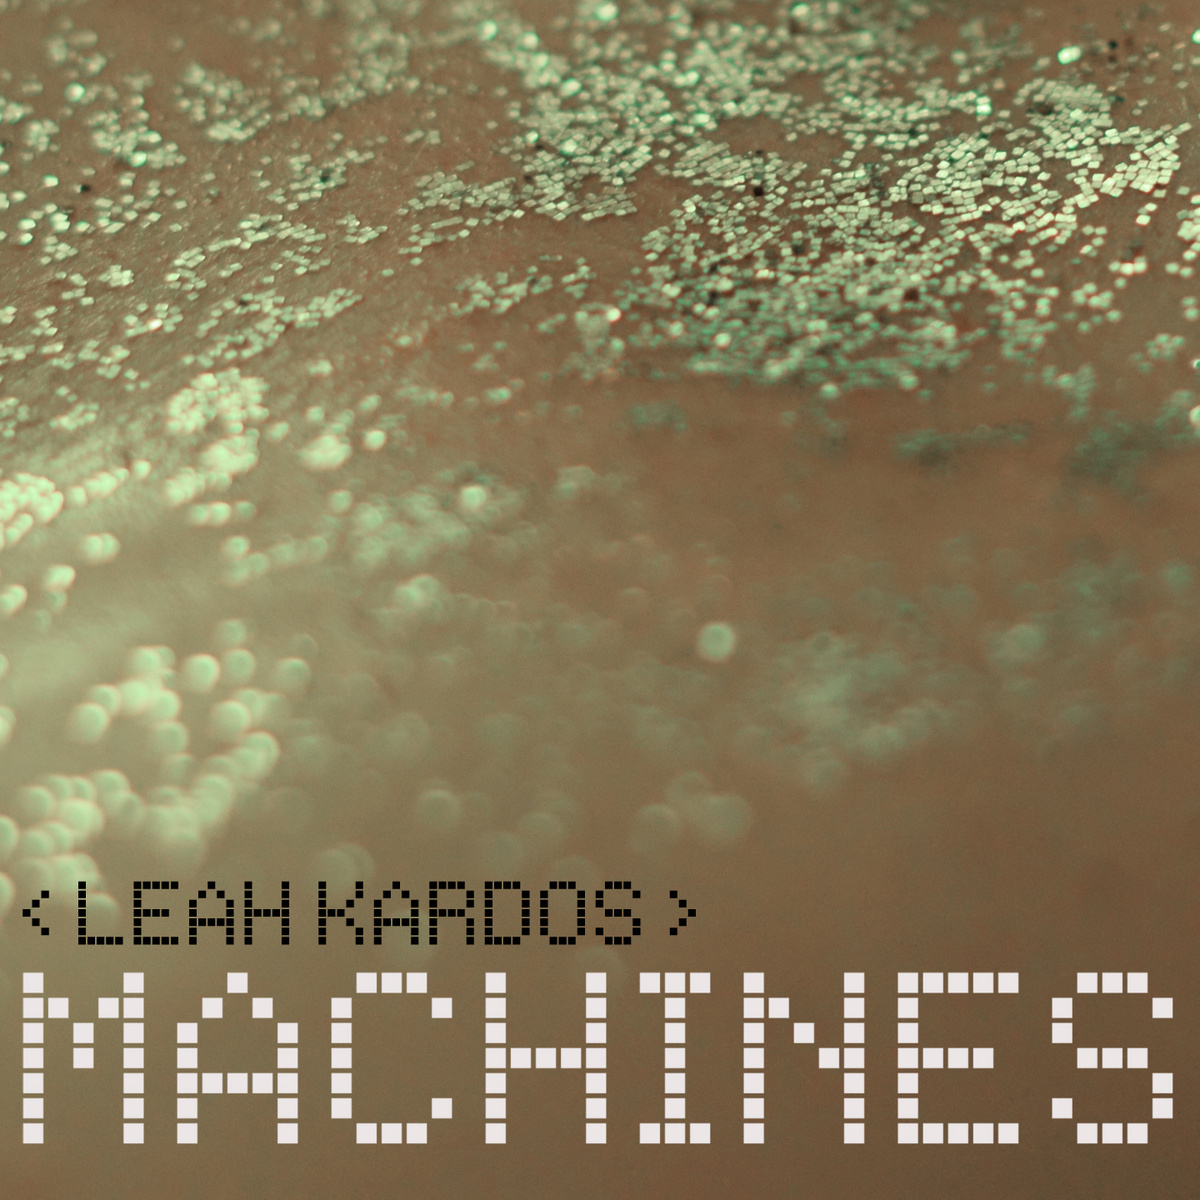 Machines By Leah Kardos